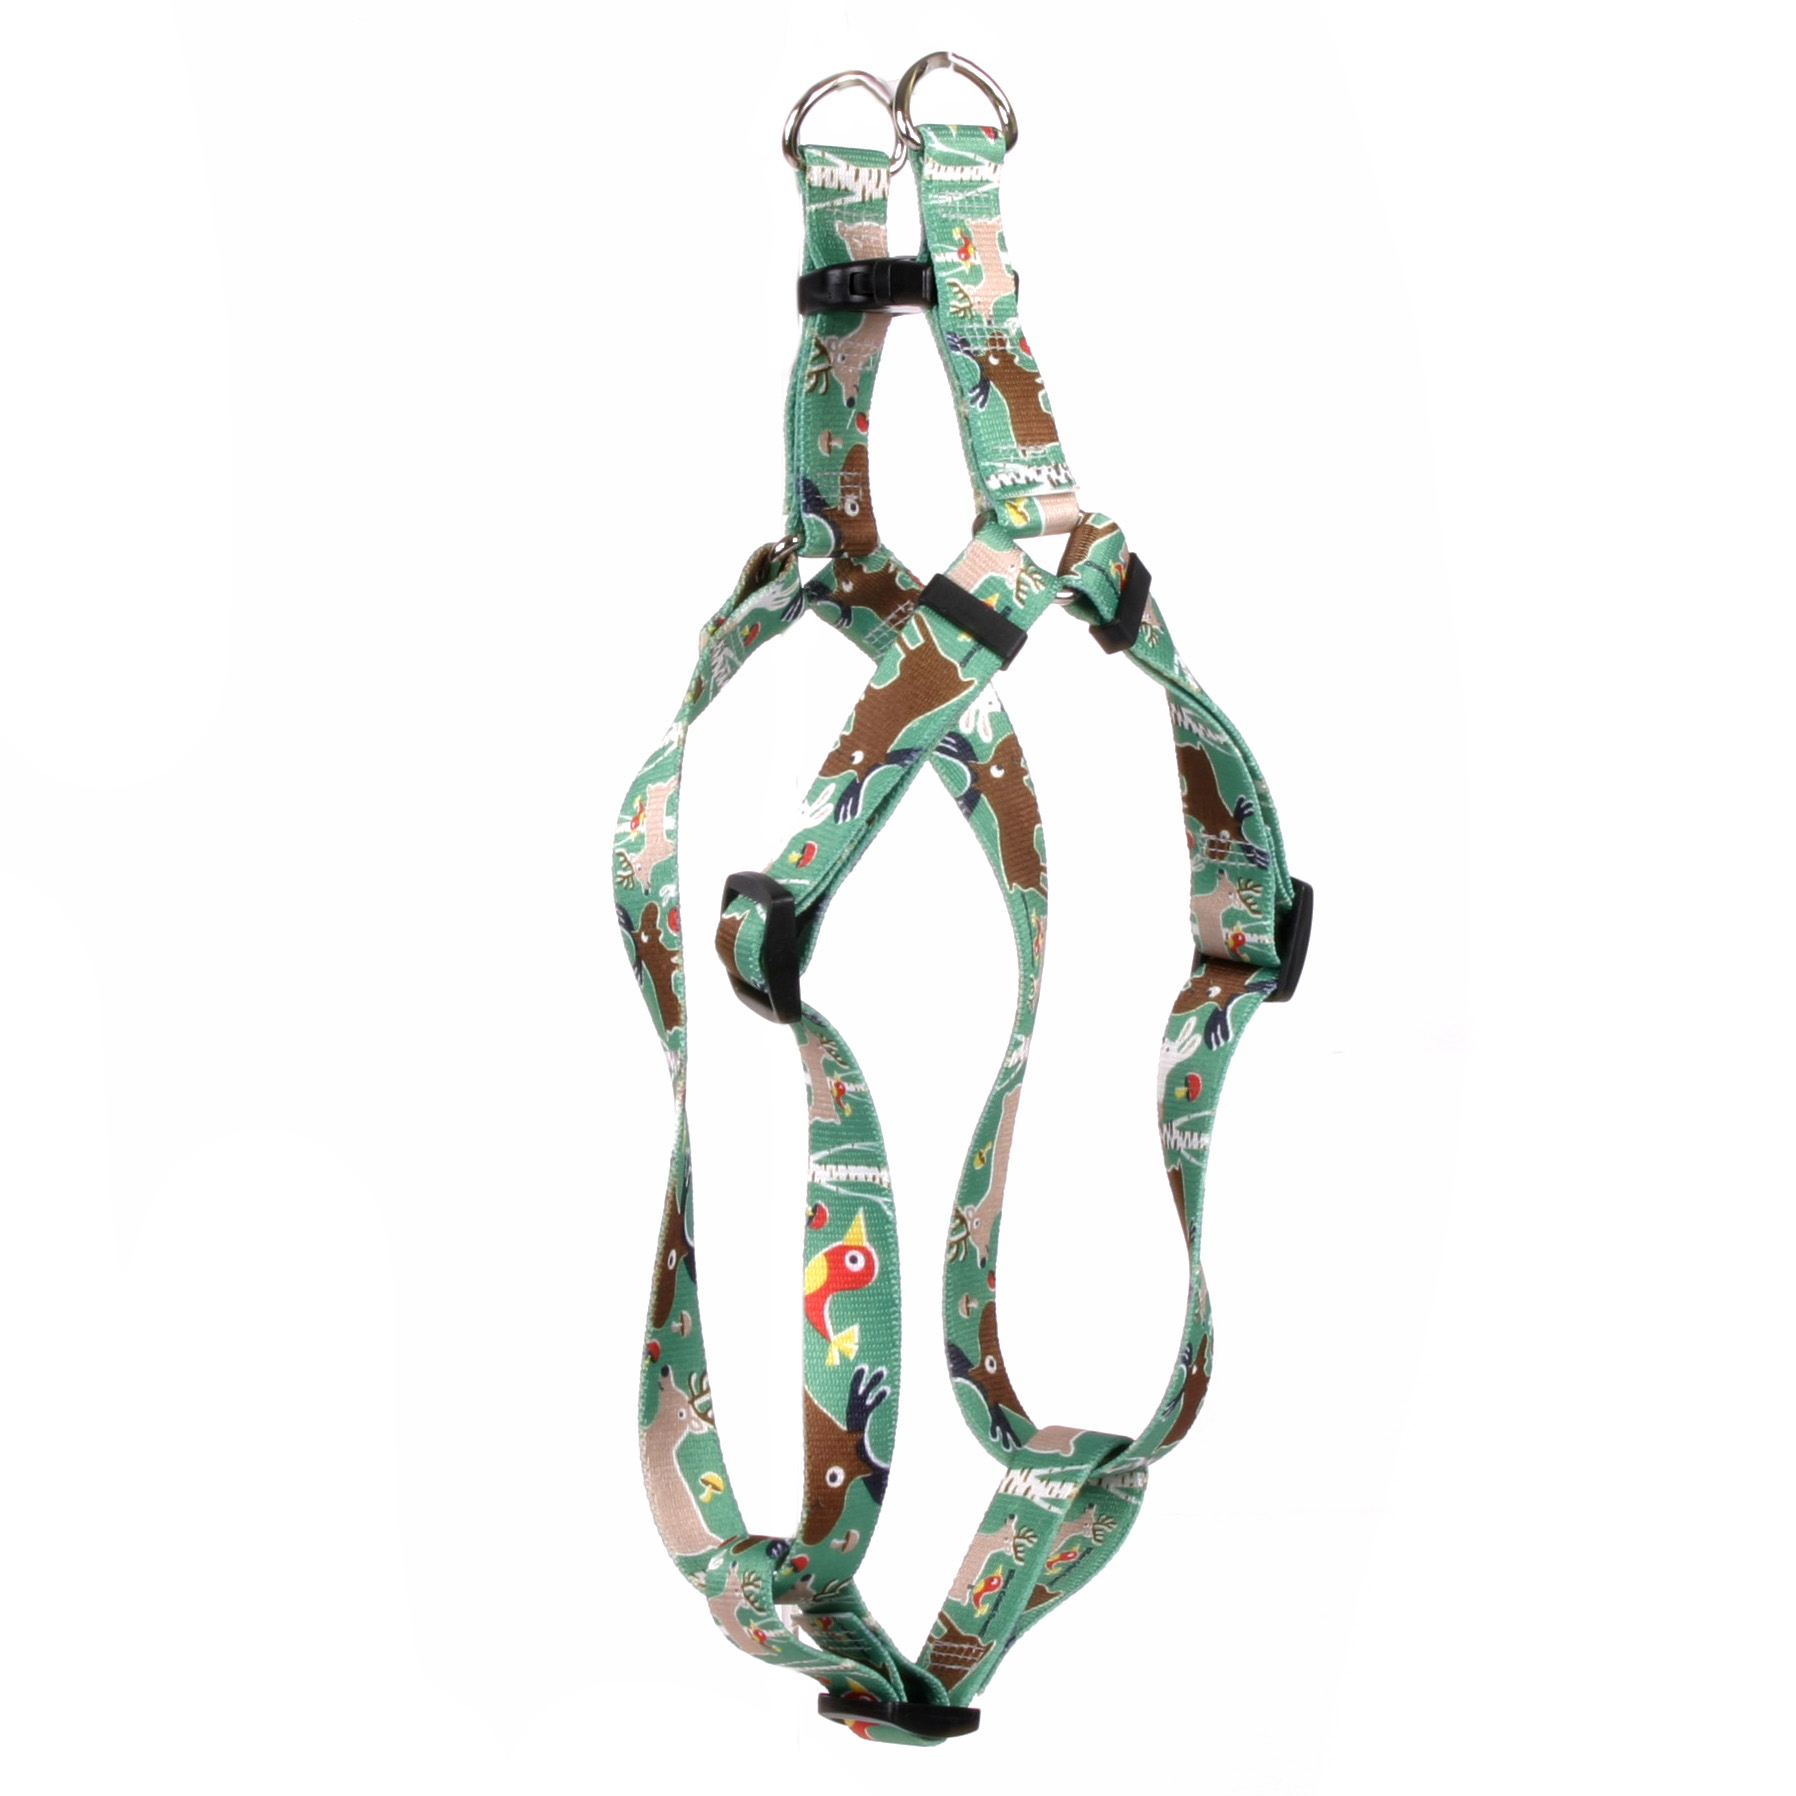 Woodland Friends Step-In Harness